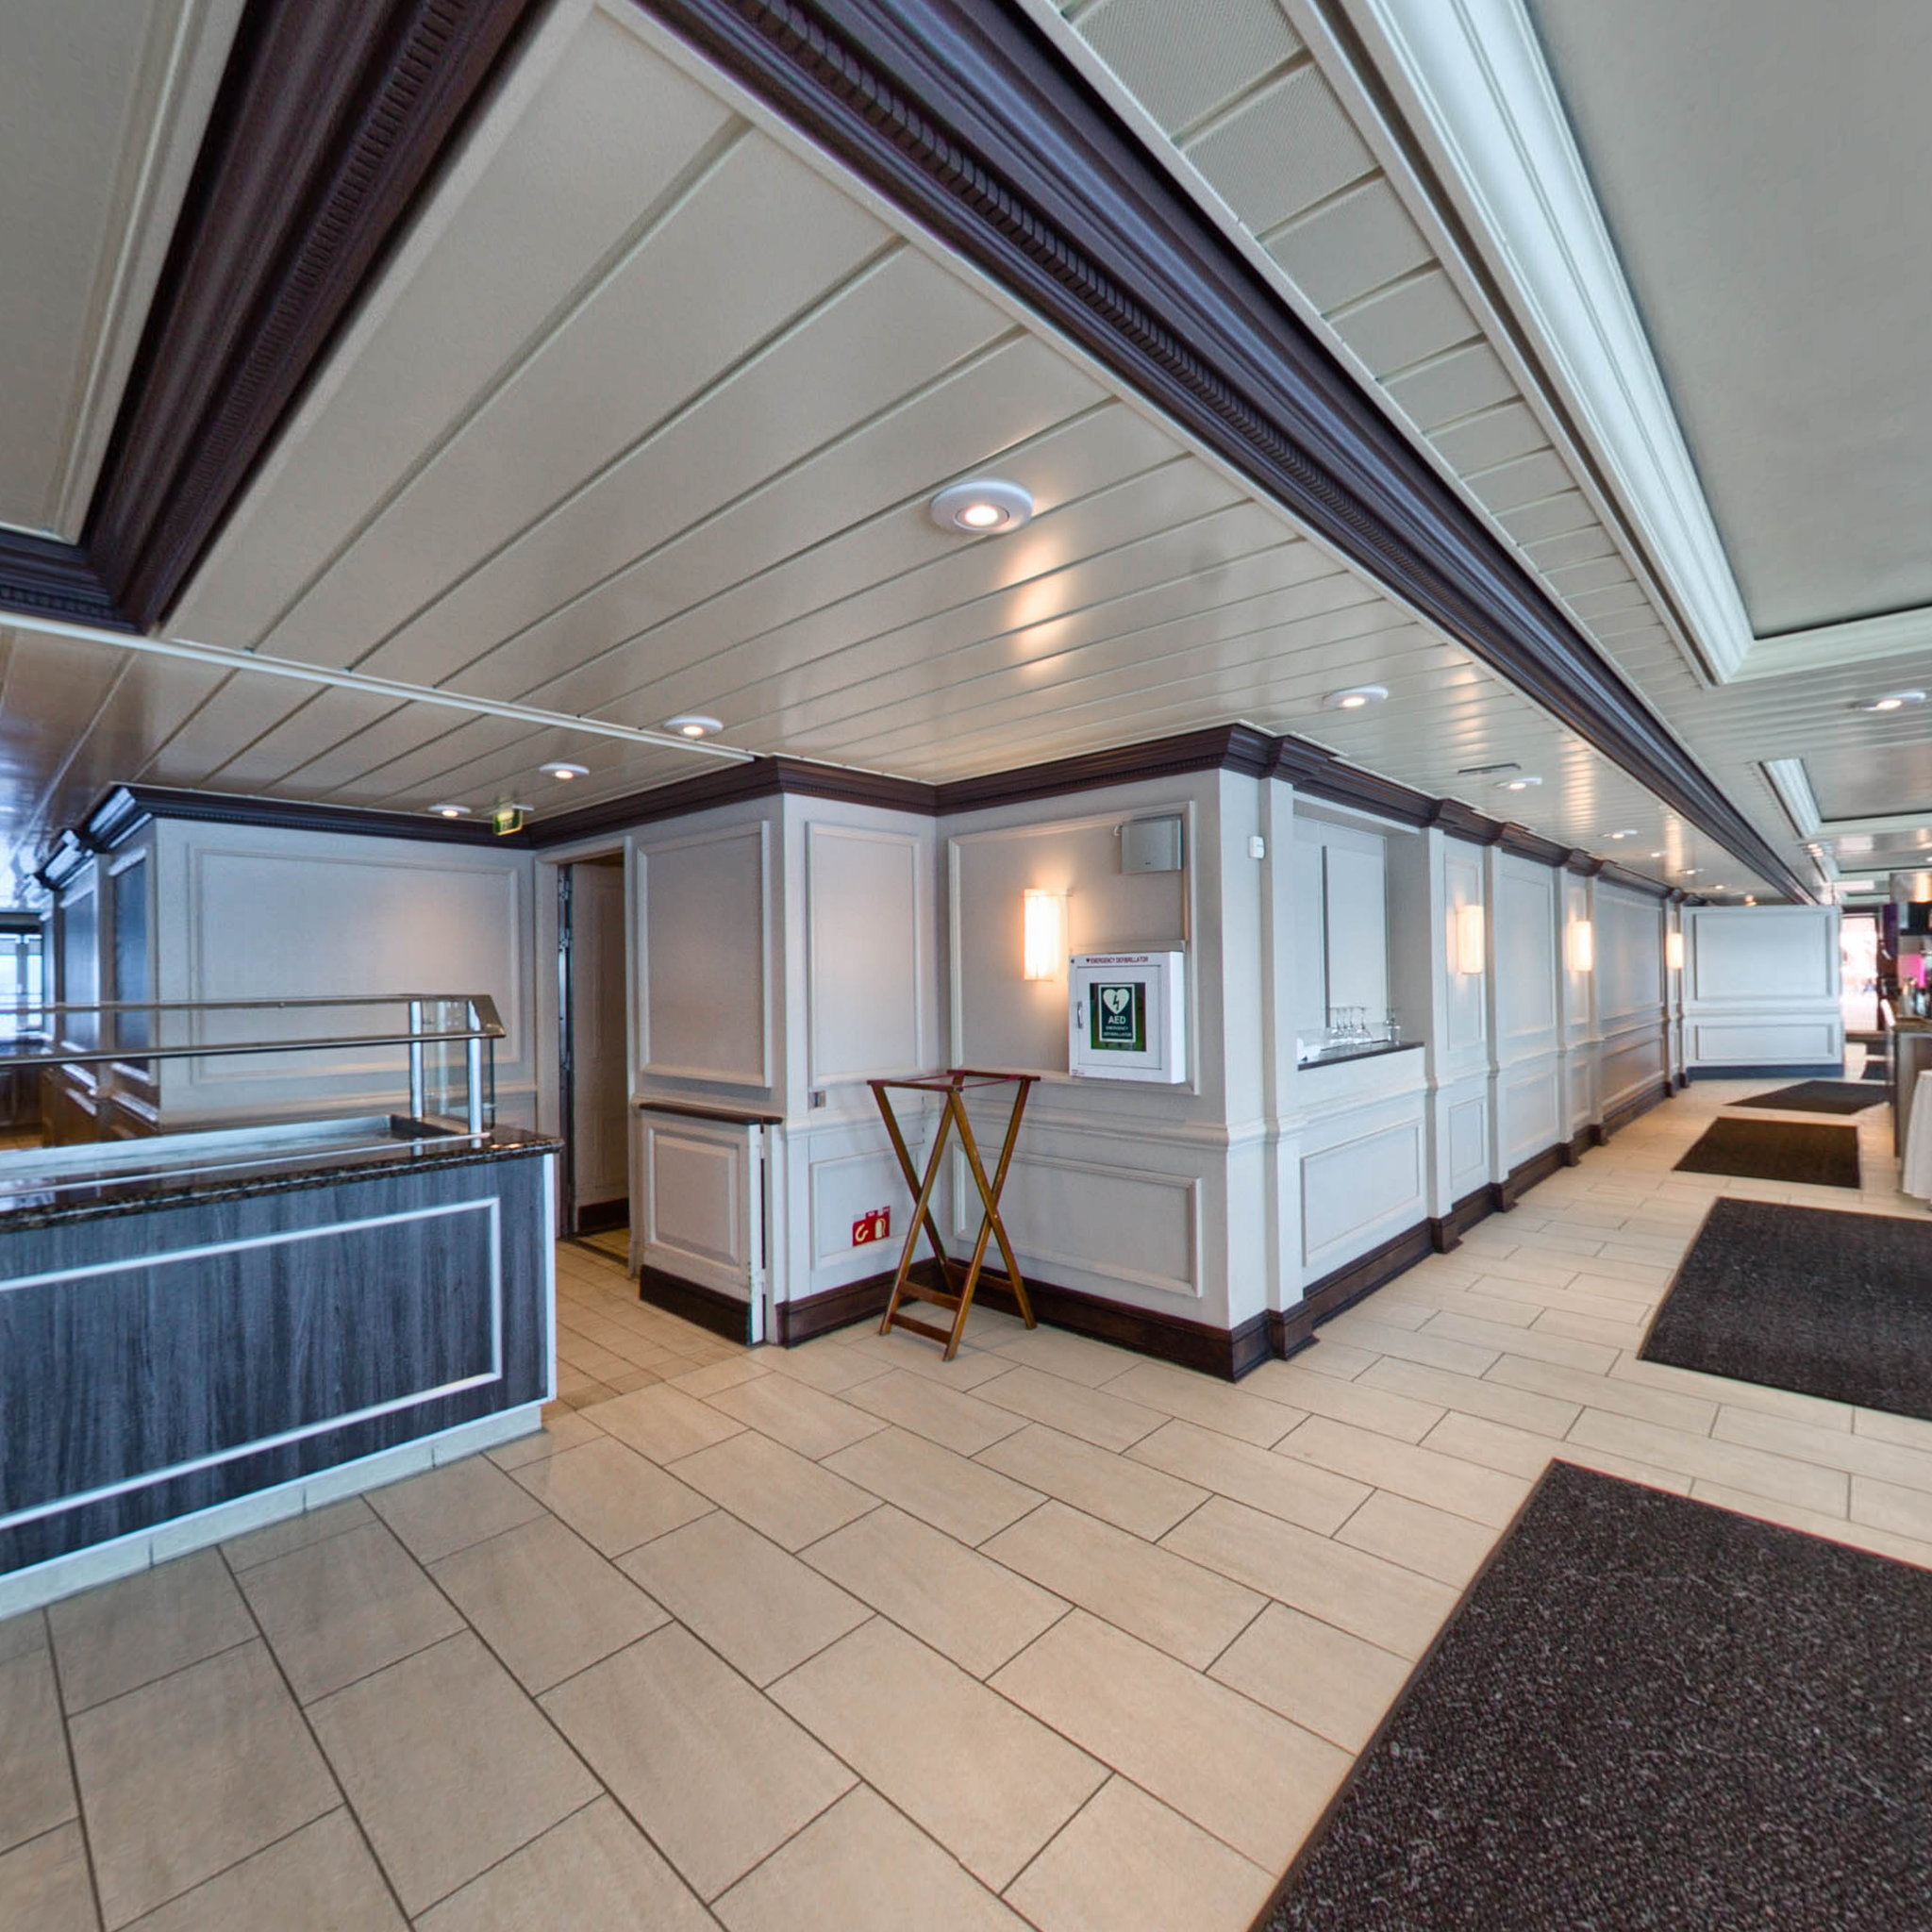 Panorama of Windows Cafe on Azamara Journey